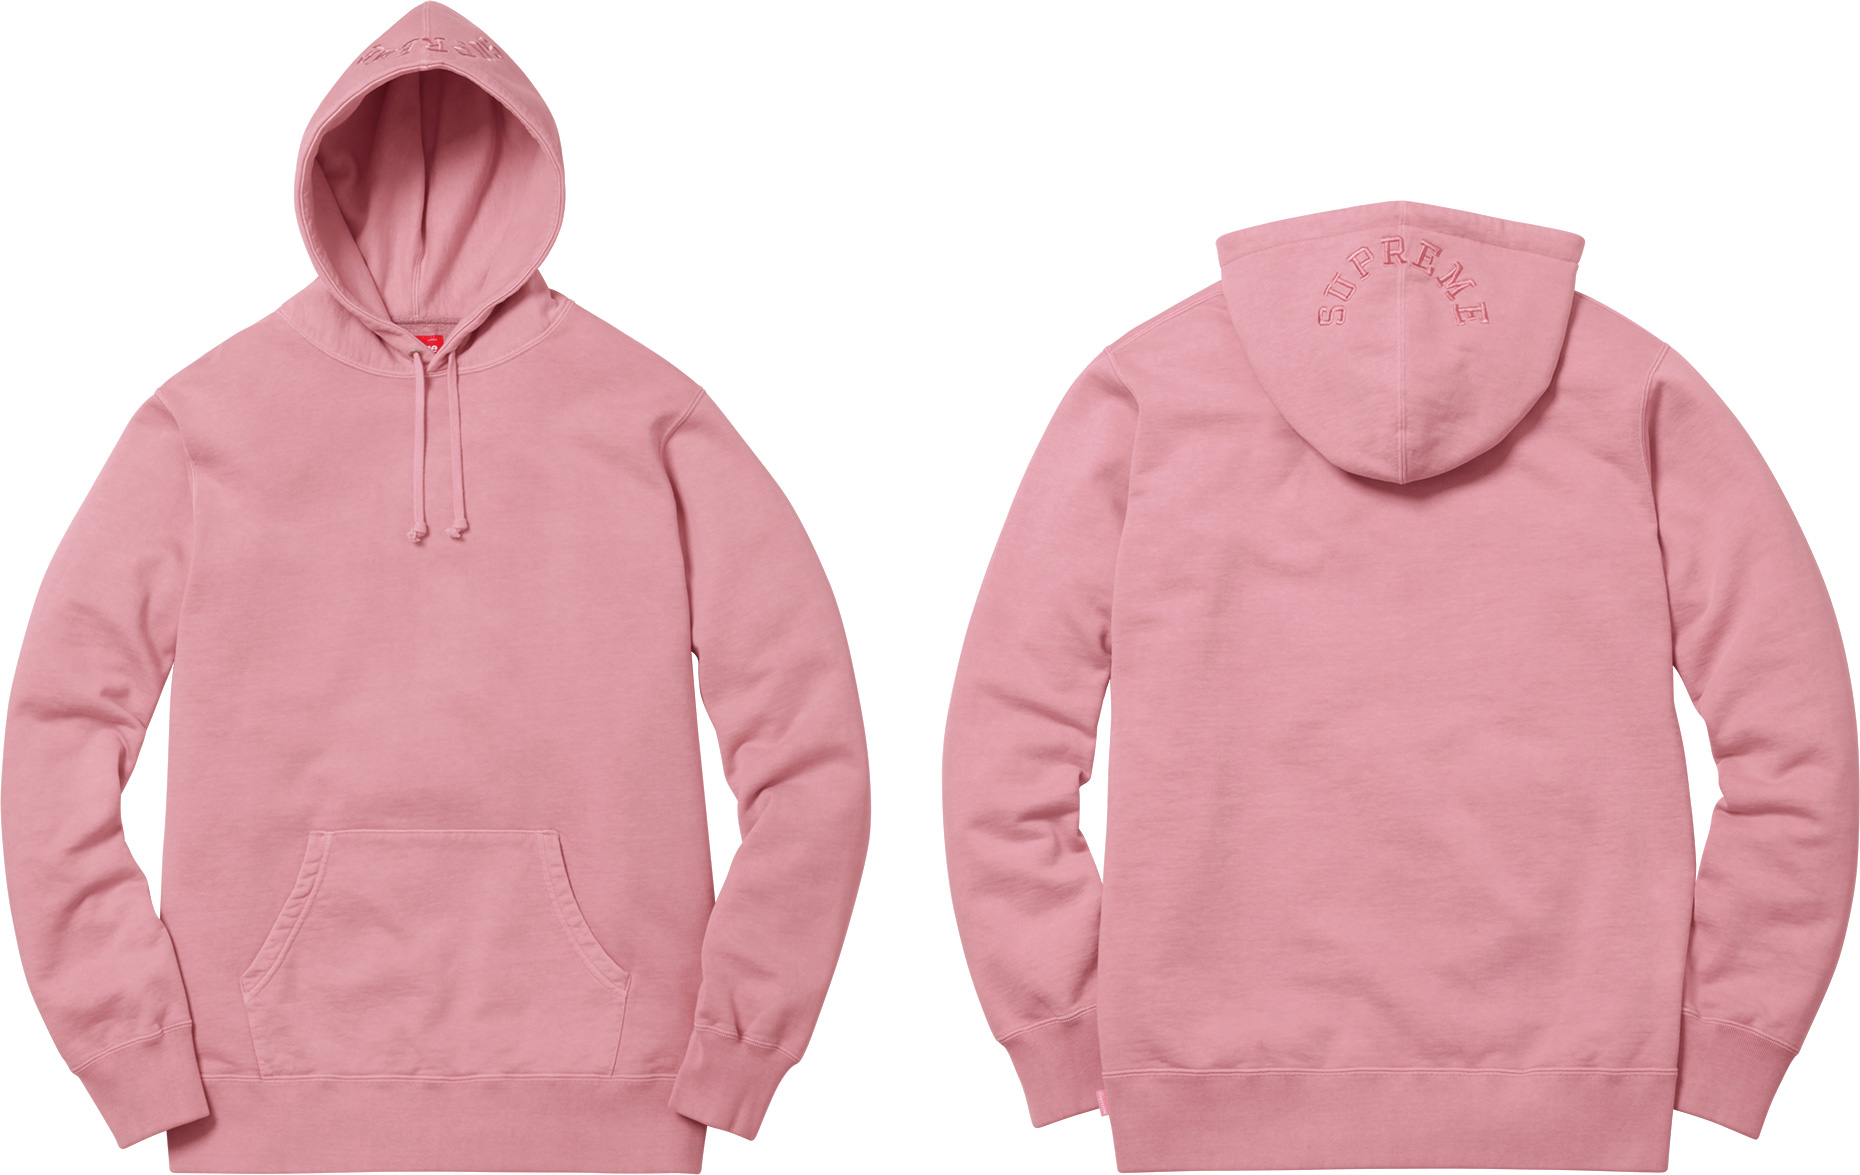 8c3773a5176e Supreme Overdyed Hooded Sweatshirt Size l - Sweatshirts   Hoodies for Sale  - Grailed